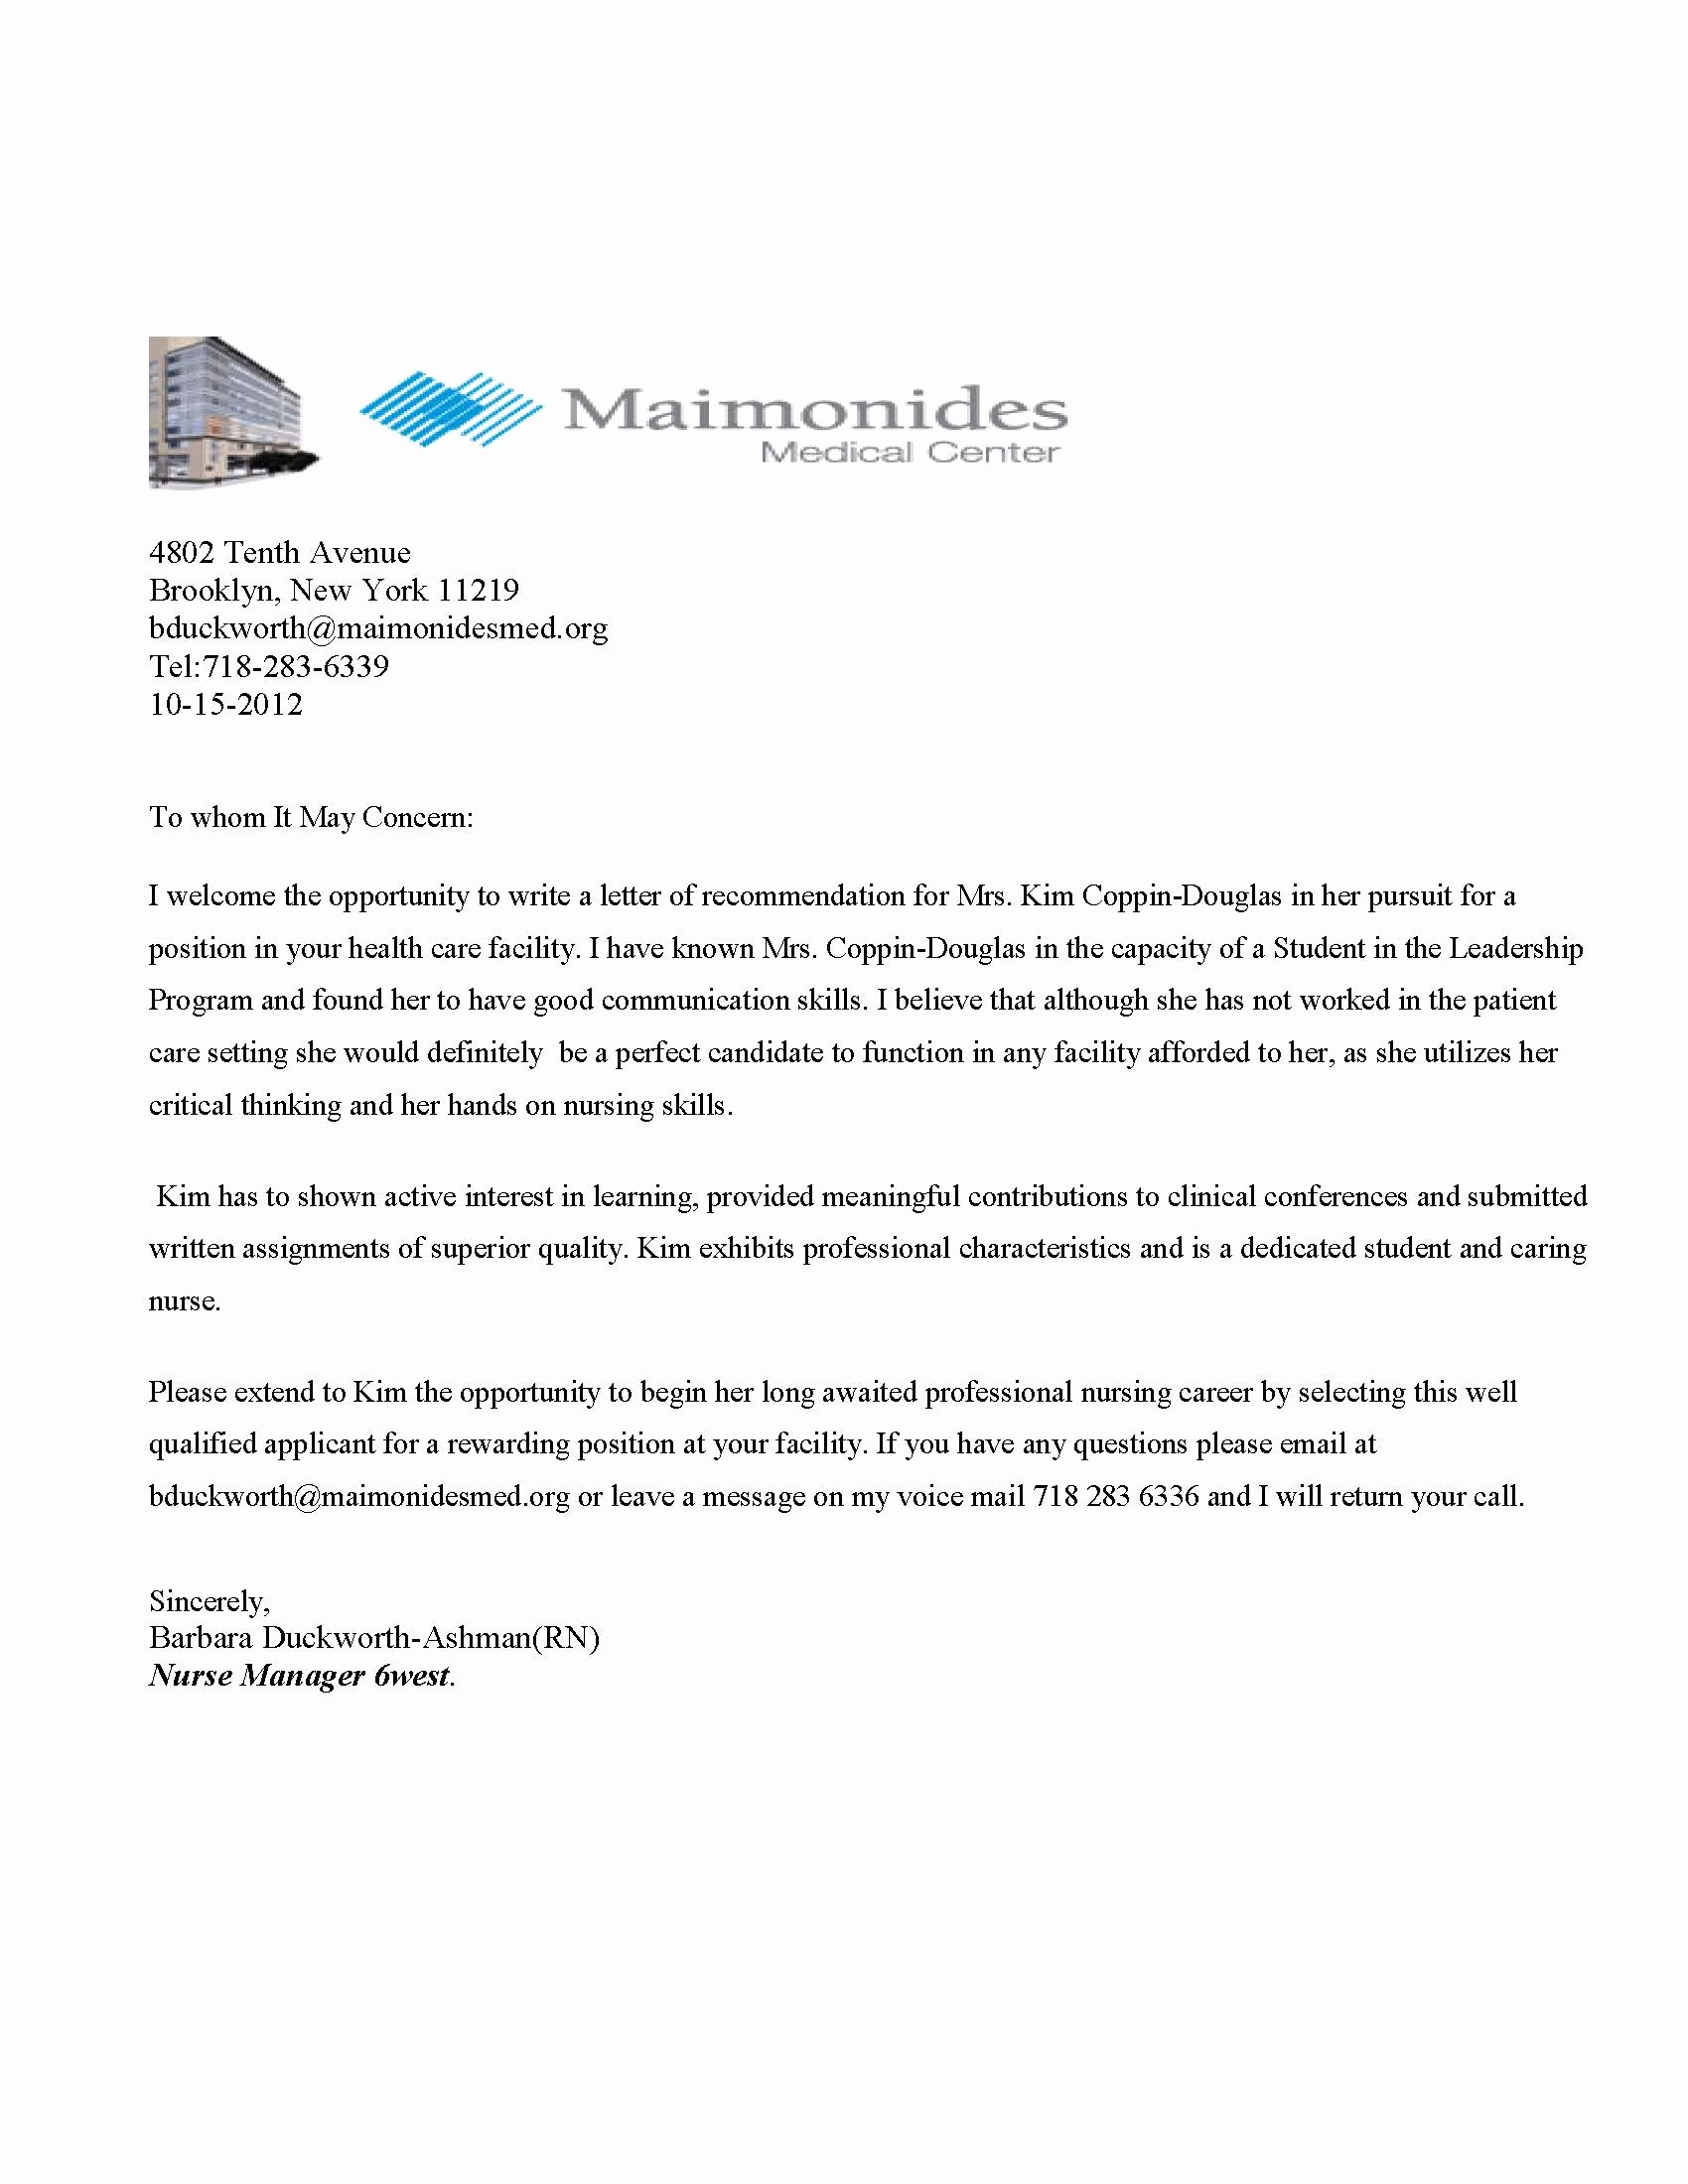 Letter Of Recommendation Medical School Best Of Maimonides Medical Center